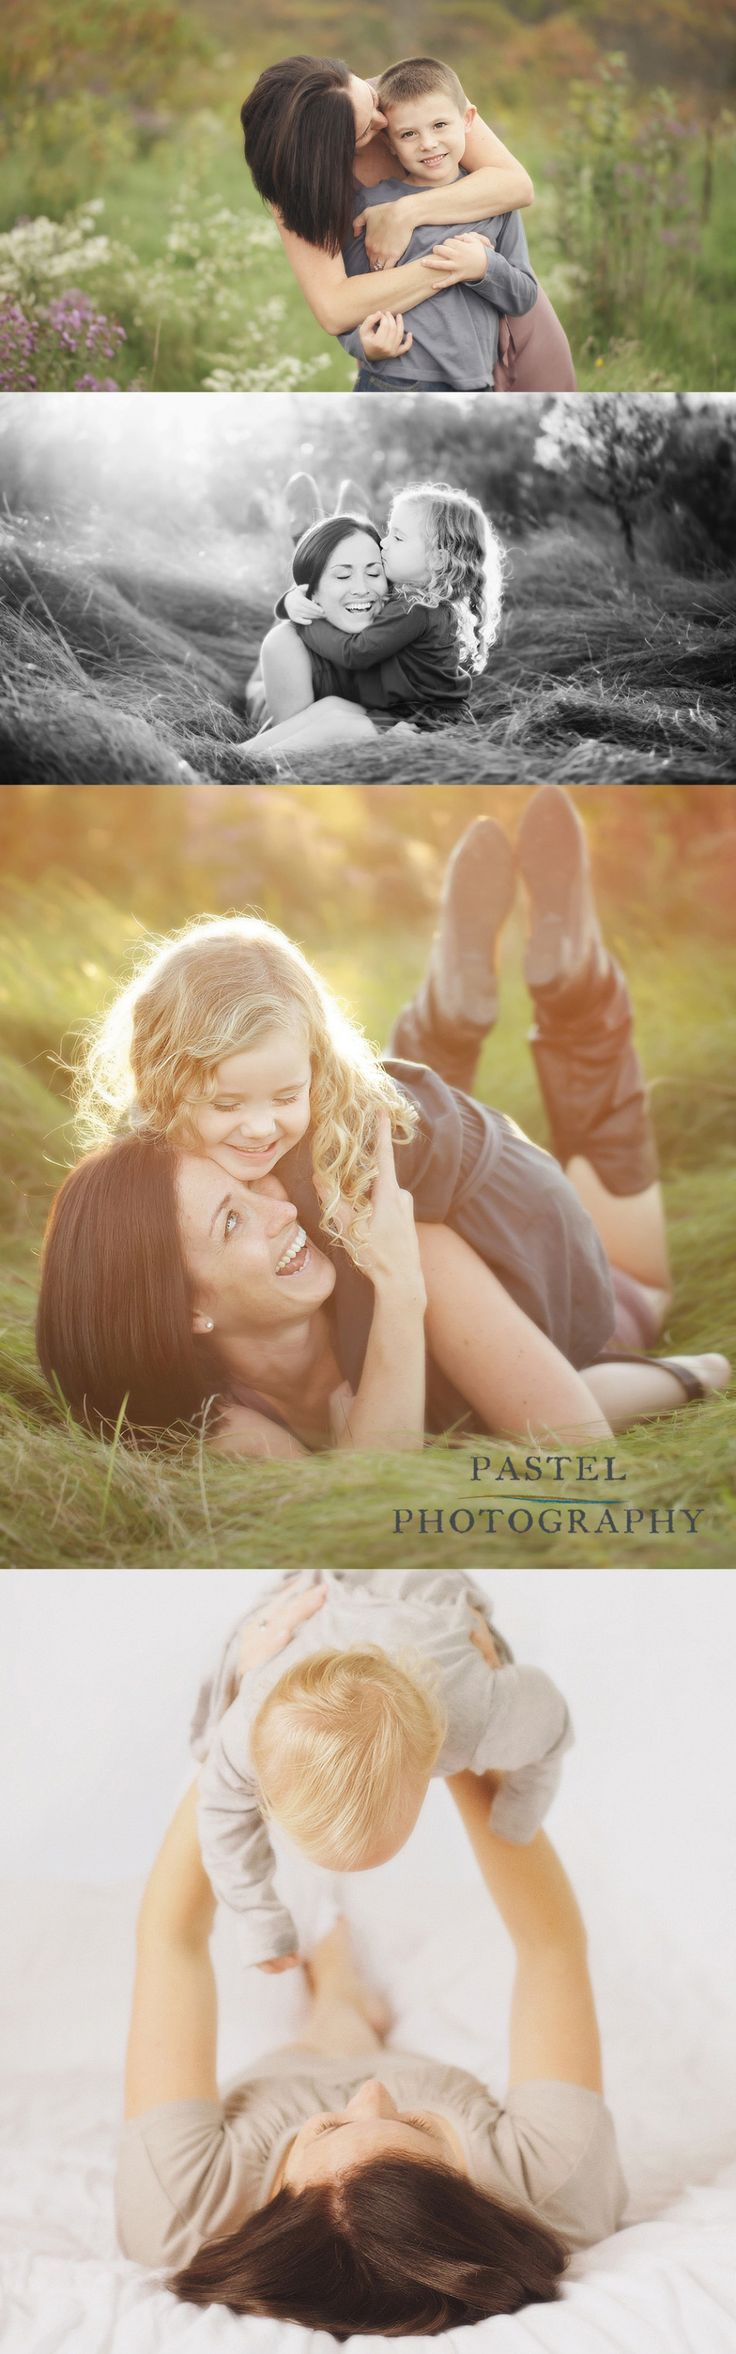 Family Photo Session | Pastel Photography | Outdoor | Siblings | Children | Pose Ideas